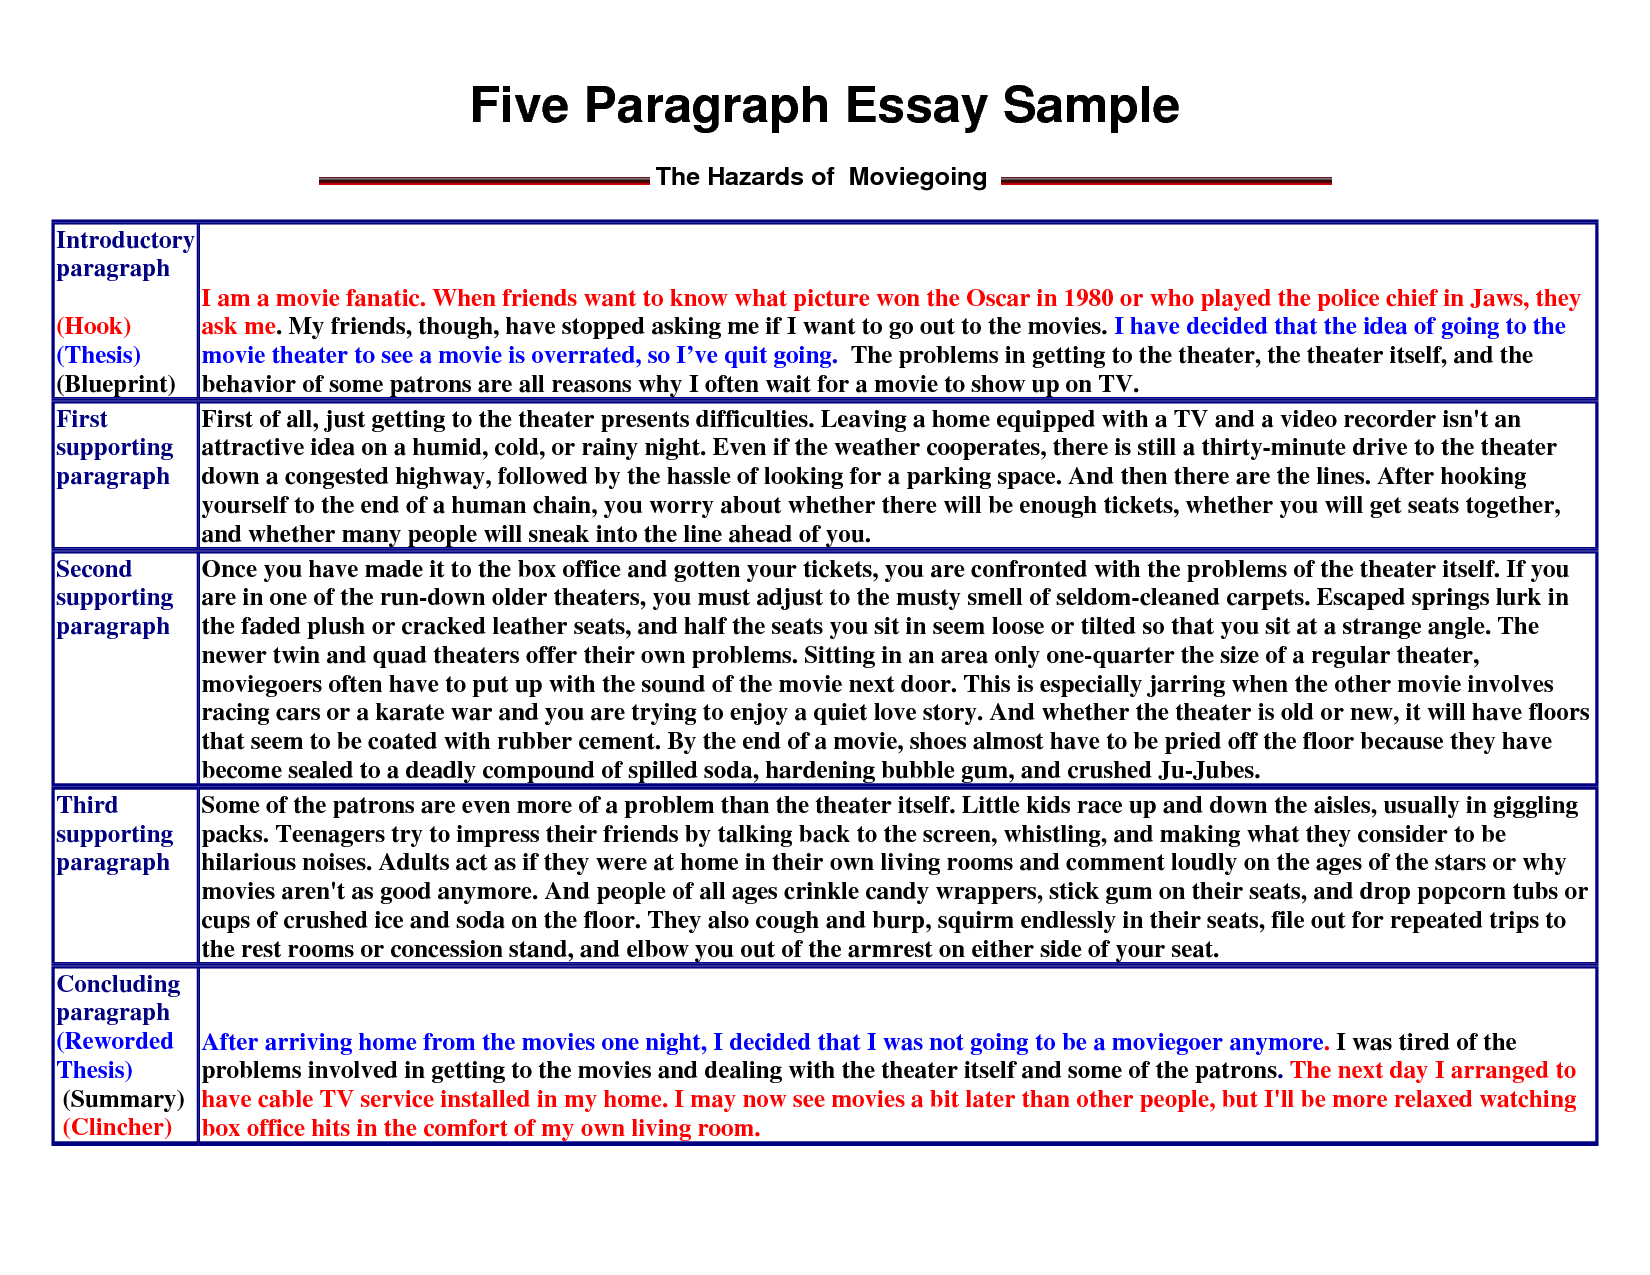 Five Paragraph Essay Writing A Five Paragraph Essay Sample 5